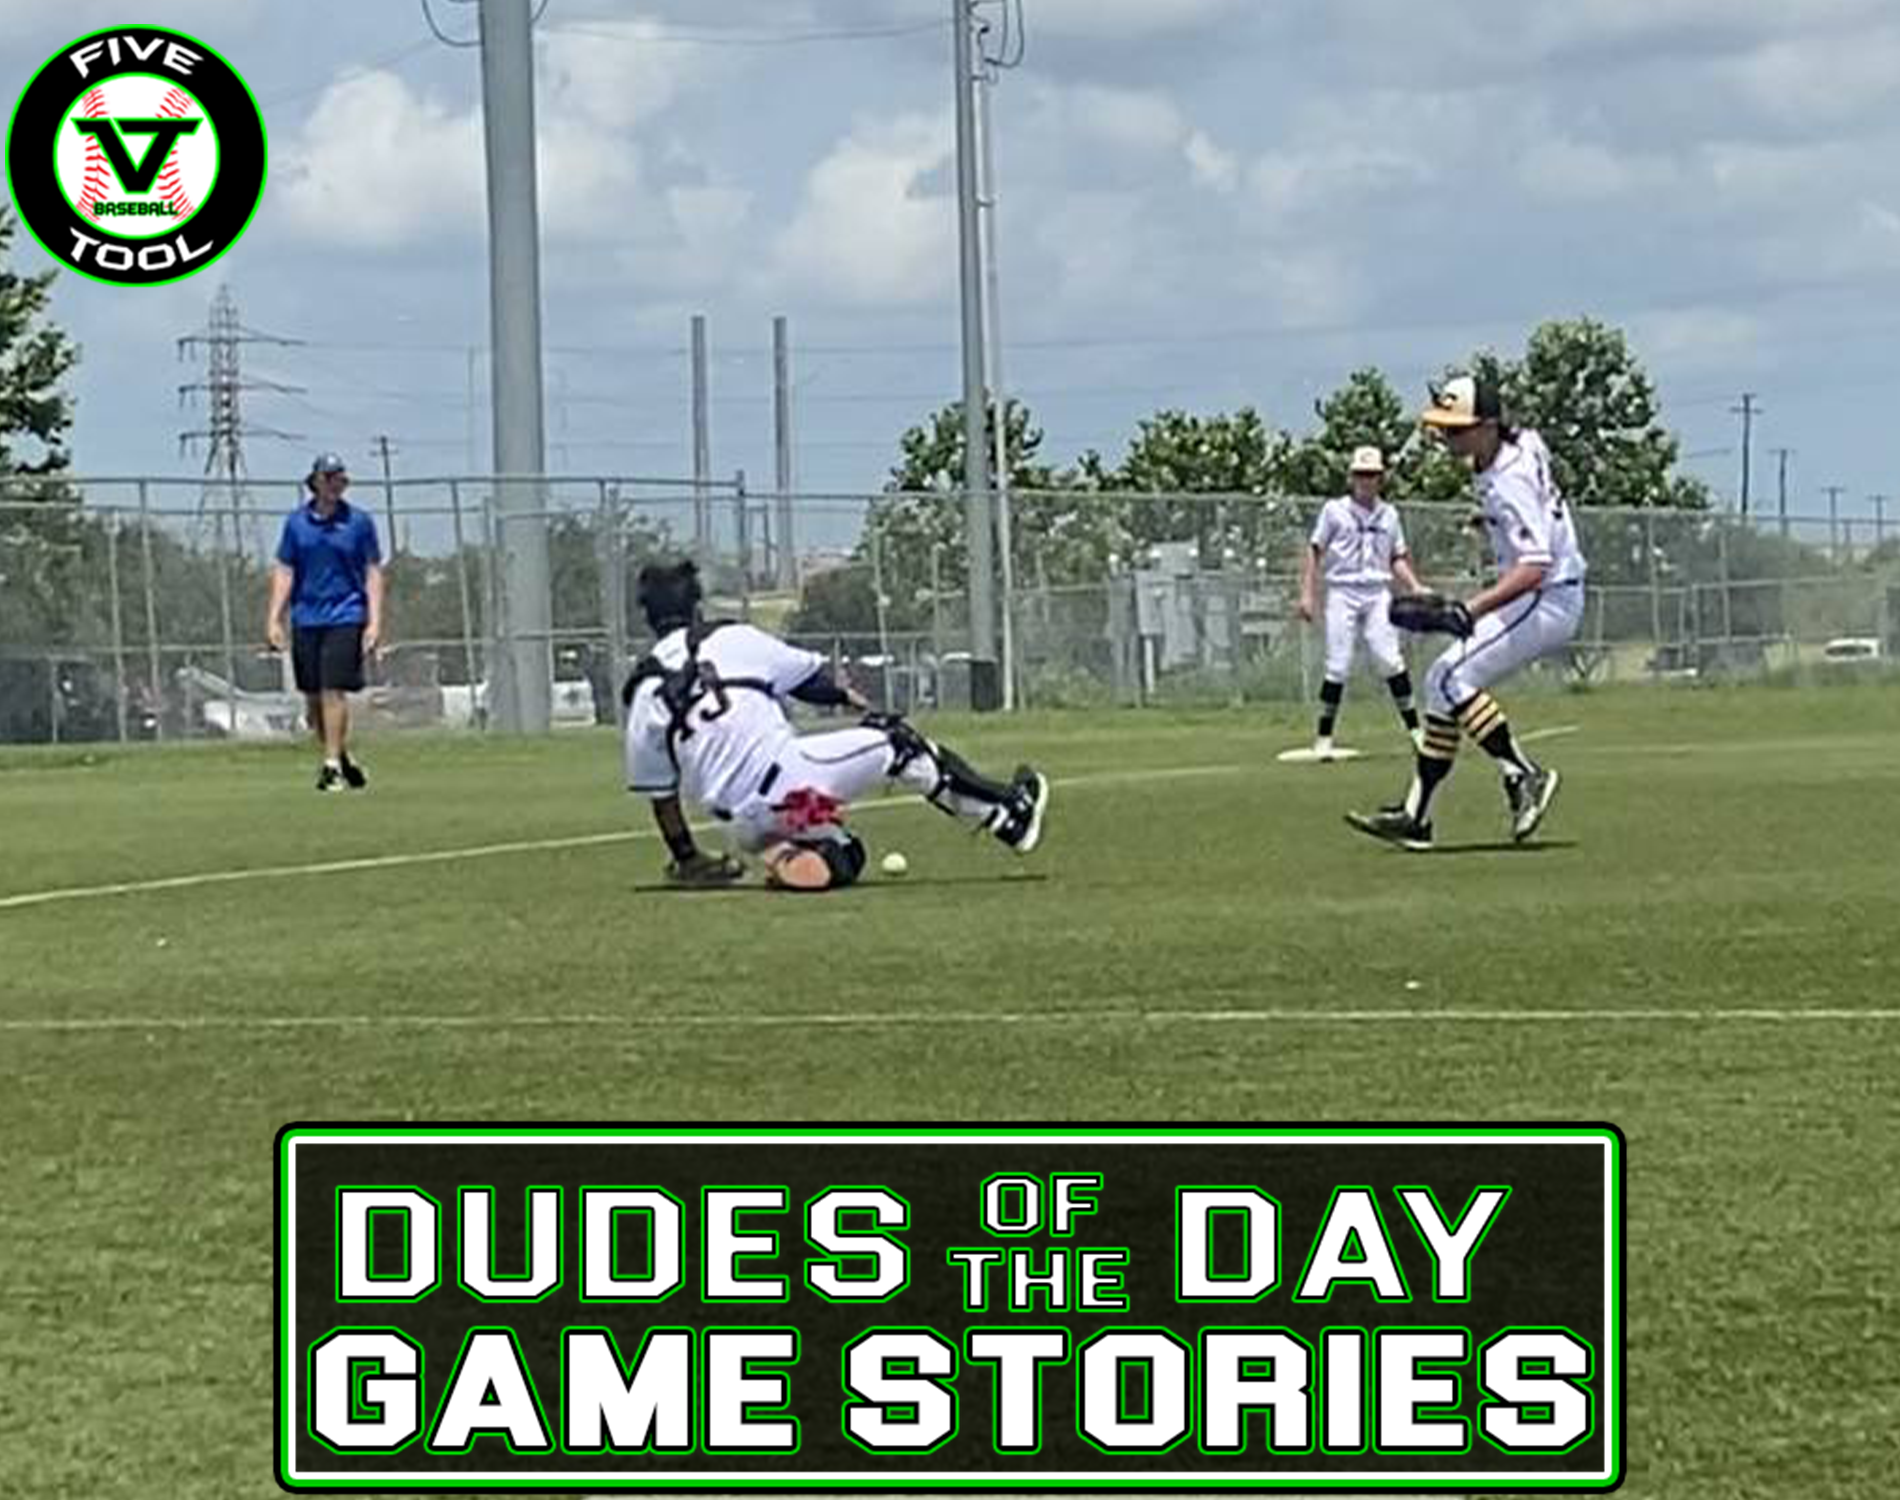 Dudes of the Day/Game Stories: Five Tool South Texas Summer Classic (Sunday, July 18)